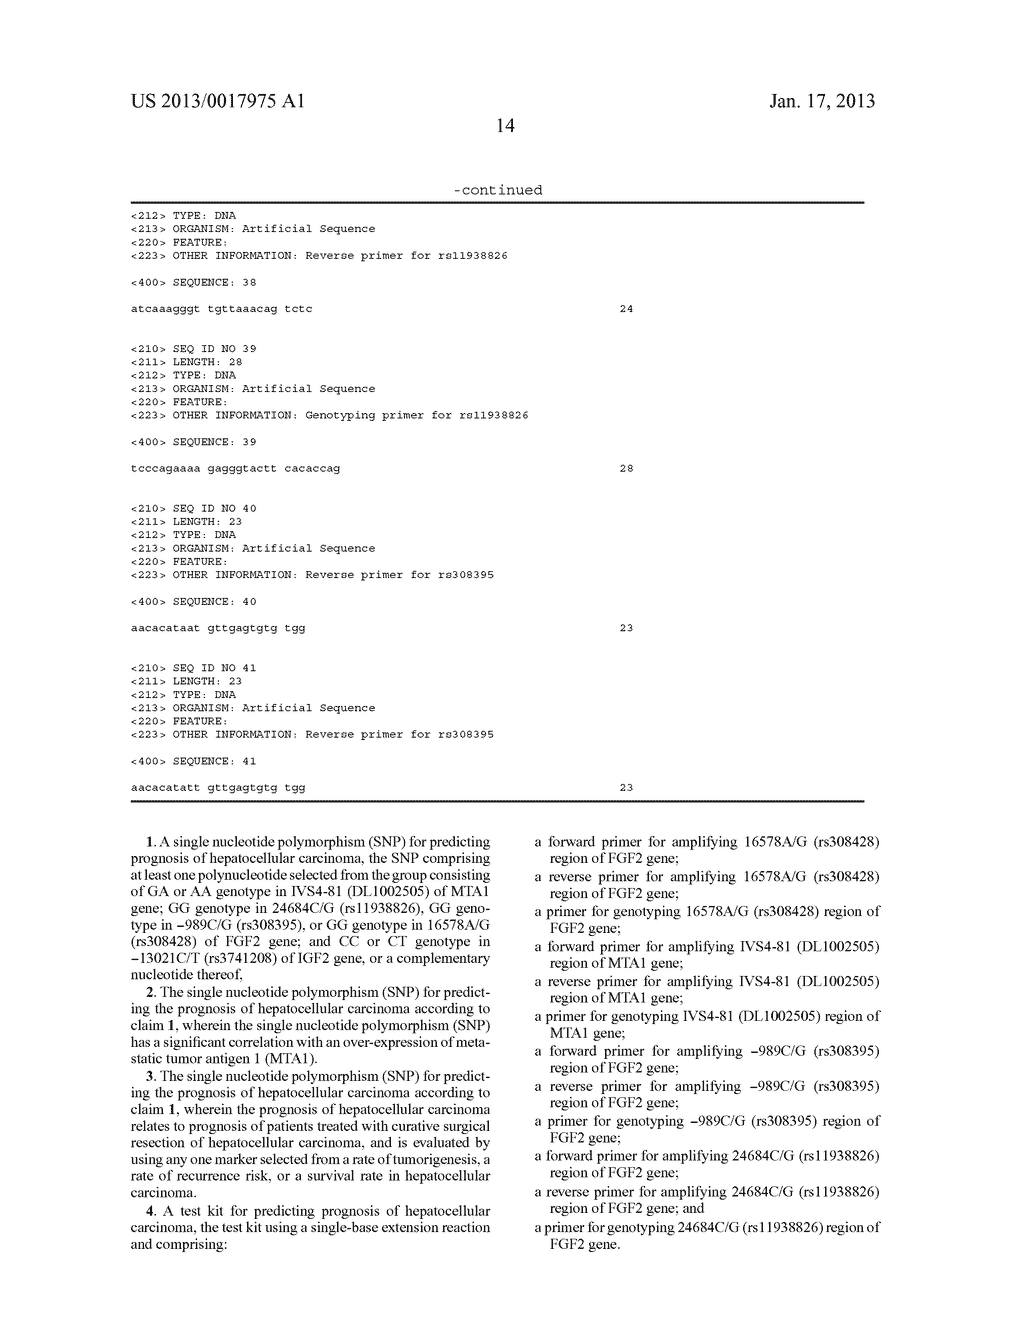 SINGLE NUCLEOTIDE POLYMORPHISM FOR PREDICTING PROGNOSIS OF HEPATOCELLULAR     CARCINOMAAANM Chung; Young HwaAACI SeoulAACO KRAAGP Chung; Young Hwa Seoul KRAANM Park; Neung HwaAACI UlsanAACO KRAAGP Park; Neung Hwa Ulsan KRAANM Yu; Eun SilAACI SeoulAACO KRAAGP Yu; Eun Sil Seoul KRAANM Lee; Young-JooAACI SeoulAACO KRAAGP Lee; Young-Joo Seoul KRAANM Kim; Jeong AAACI SeoulAACO KRAAGP Kim; Jeong A Seoul KRAANM Lee; Dan-BiAACI SeoulAACO KRAAGP Lee; Dan-Bi Seoul KRAANM Lee; Sae-HwanAACI Cheonan-shiAACO KRAAGP Lee; Sae-Hwan Cheonan-shi KRAANM Lee; Jong-EunAACI SeoulAACO KRAAGP Lee; Jong-Eun Seoul KR - diagram, schematic, and image 18